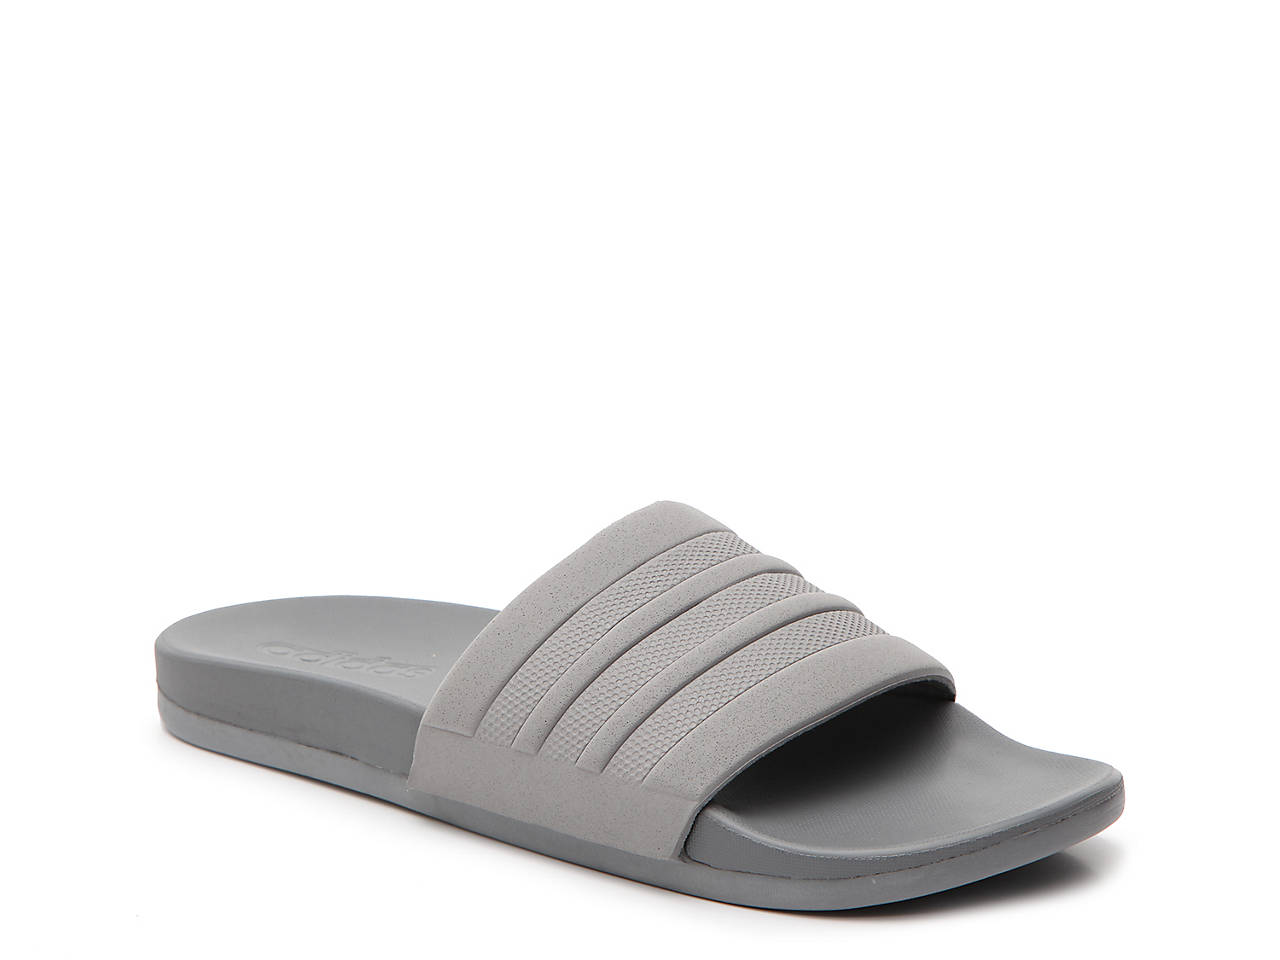 f13b52f4434e adidas Adilette Comfort Slide Sandals - Women s Women s Shoes